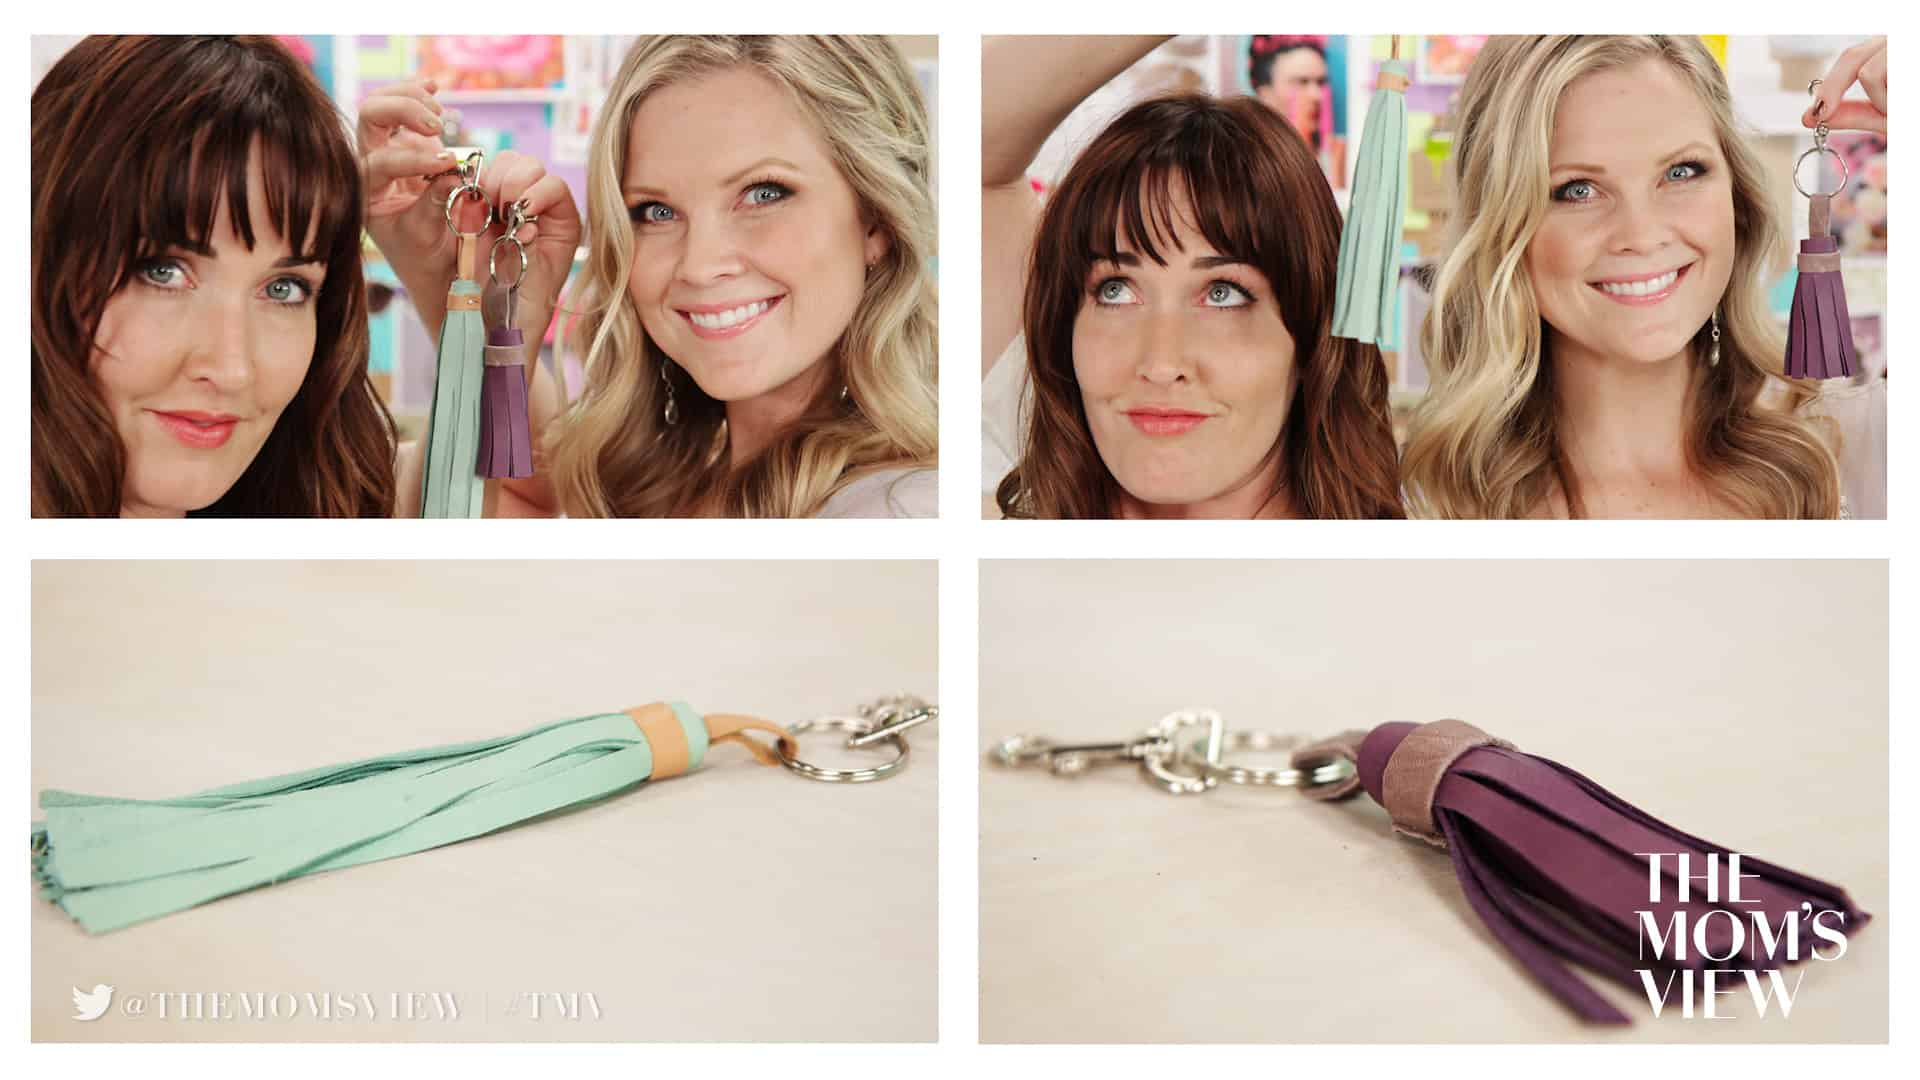 The DIY Challenge Show with Jaime and Kayli keychain